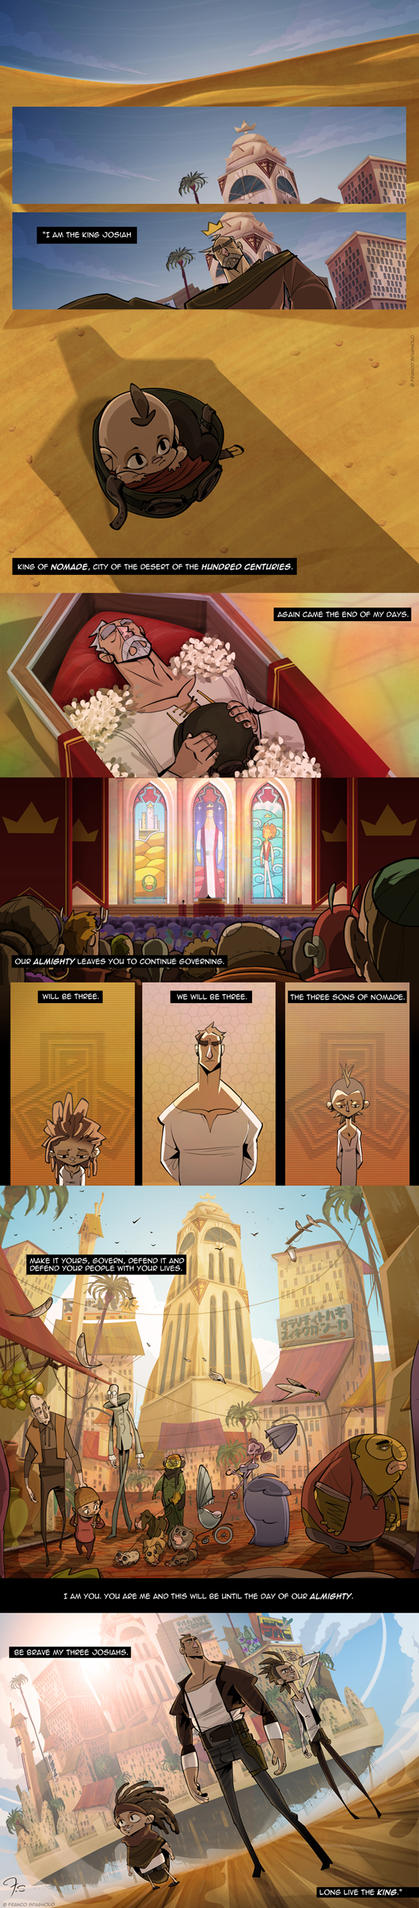 NOMADE - Comic pages by Spagnolo